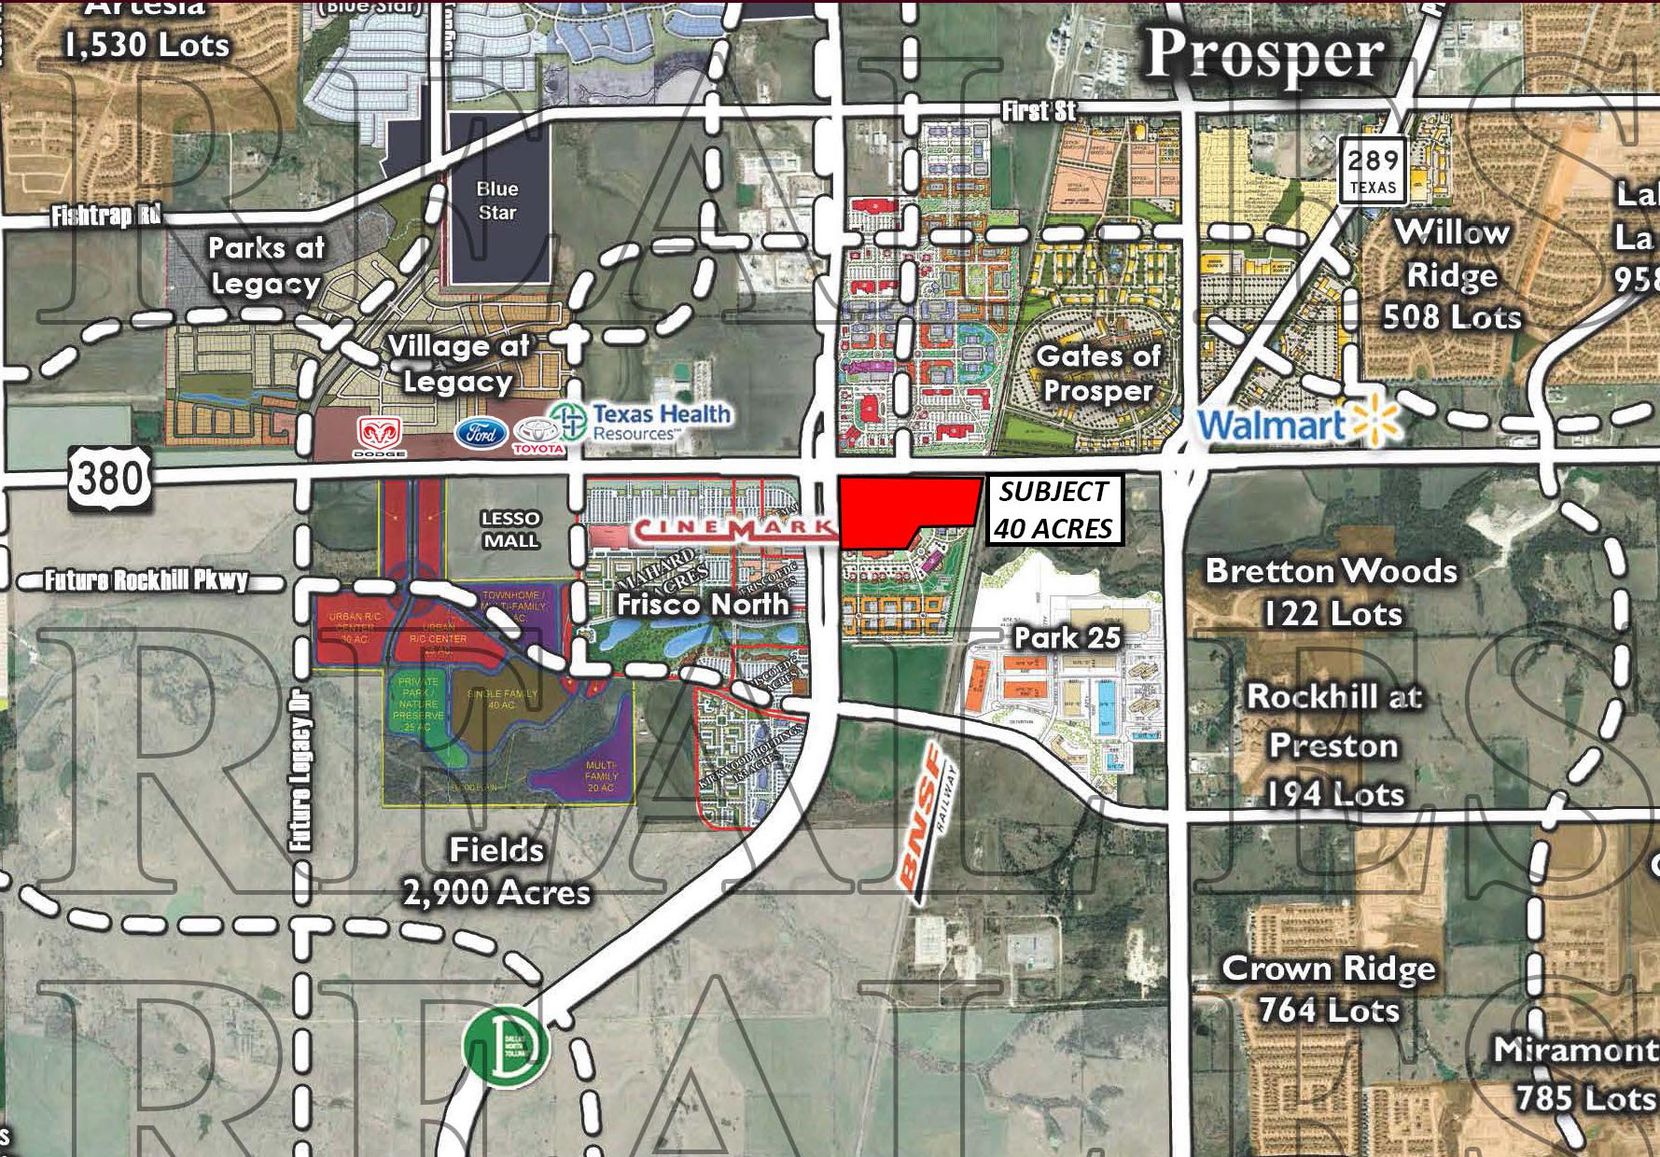 The property sold is at the southeast corner of the tollway and U.S. 380, across from the new Cinemark.